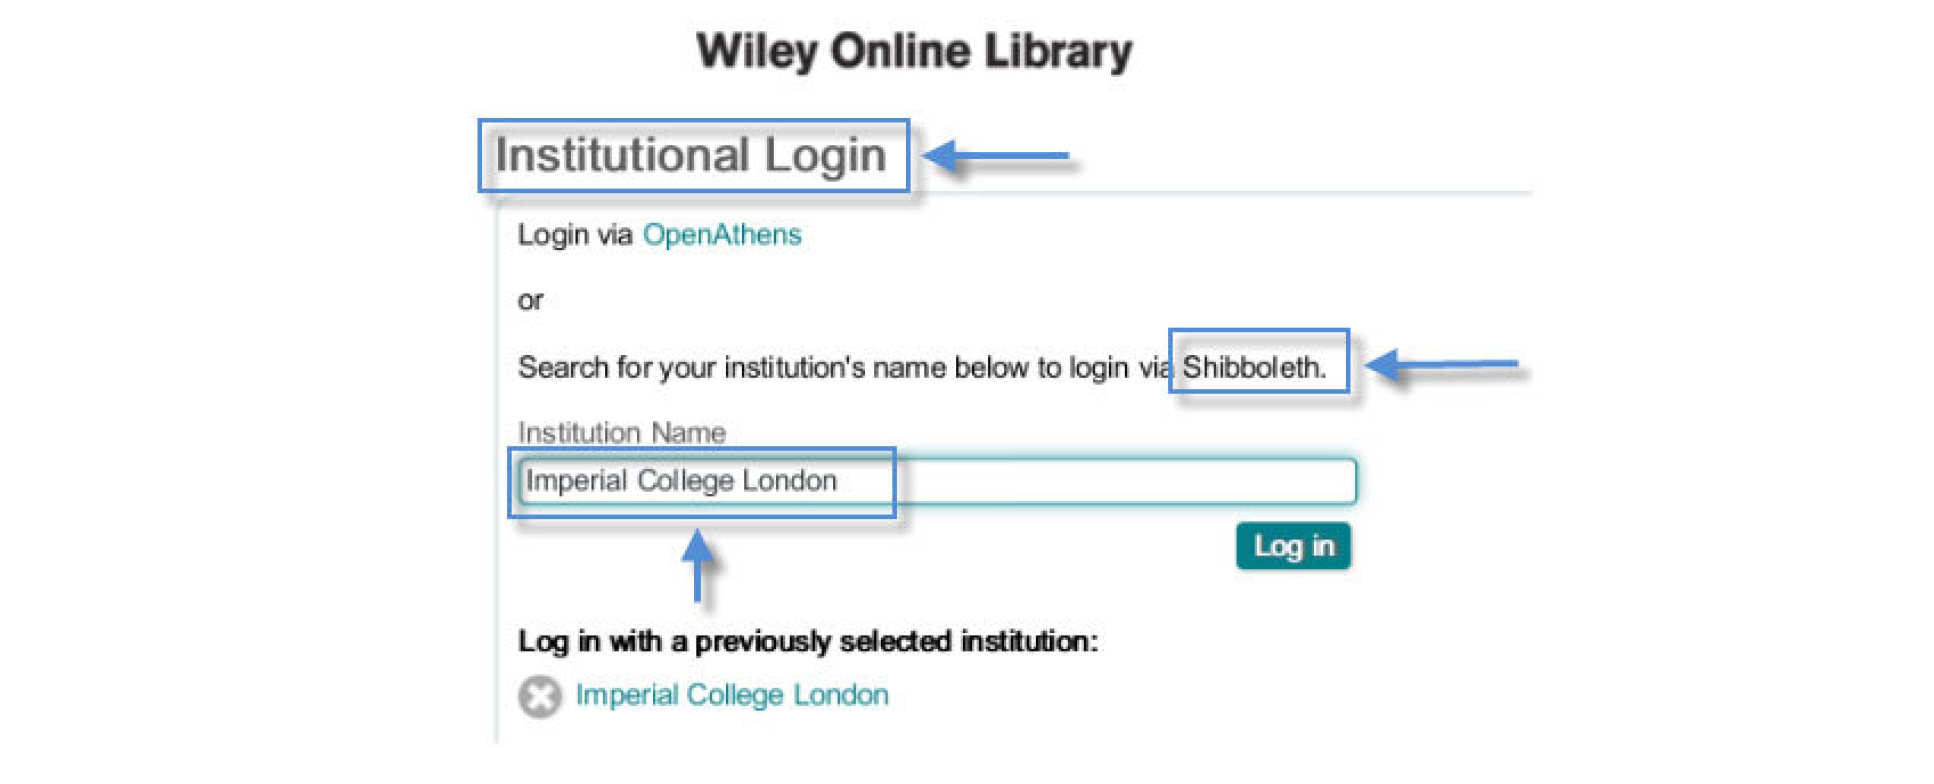 Screen image showing Institutional login